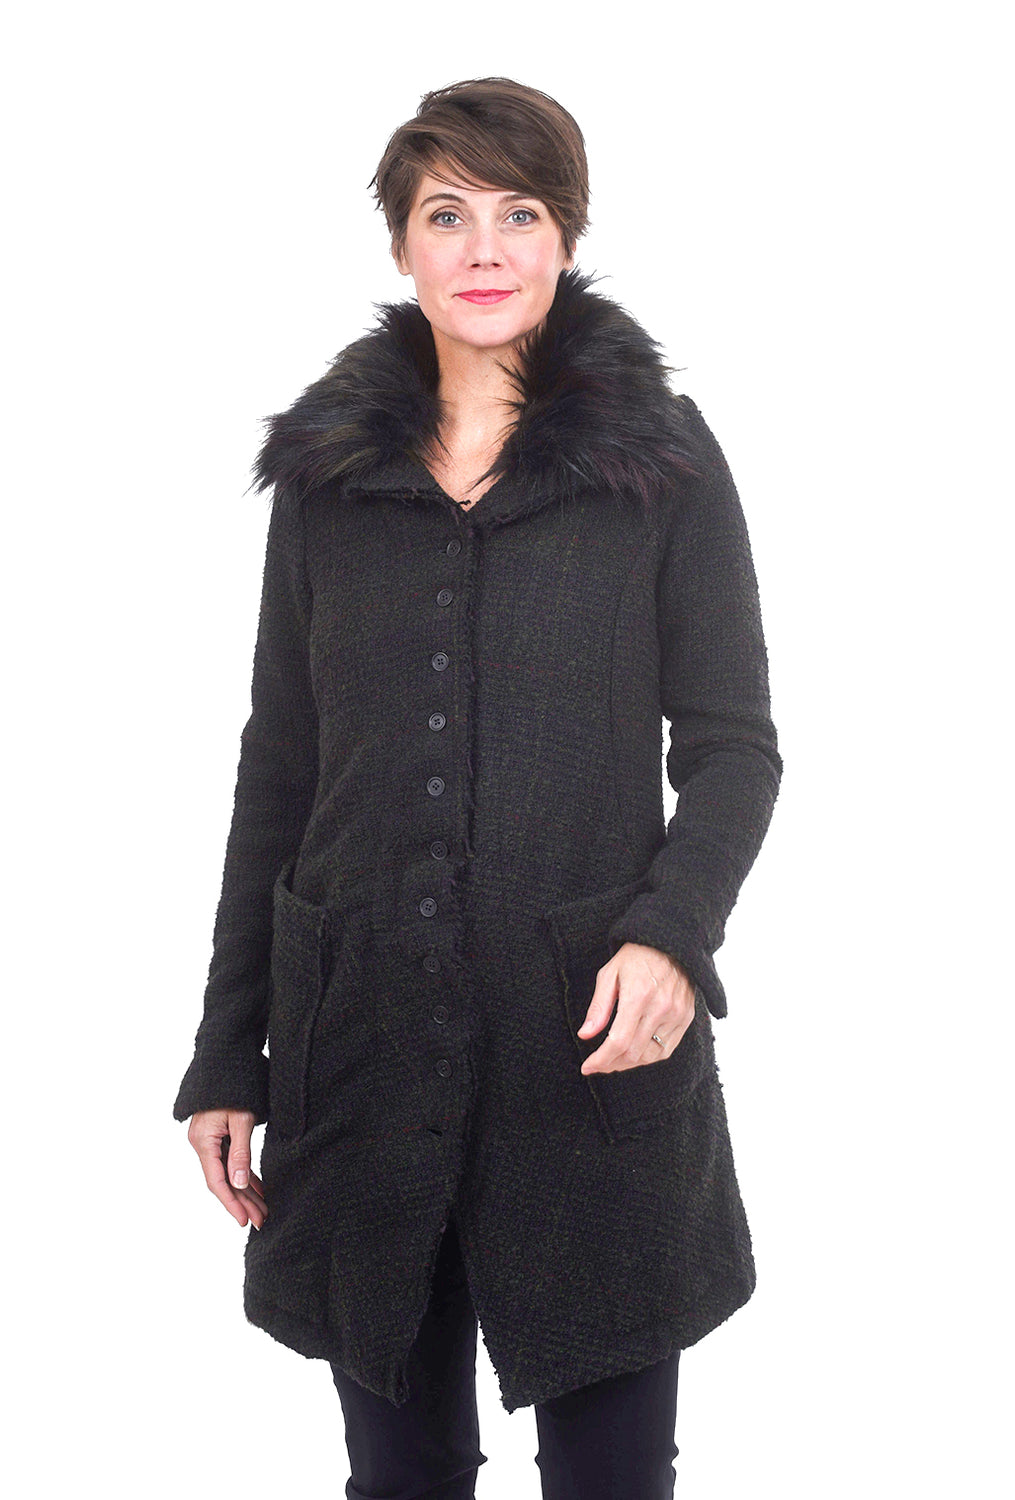 Rundholz Black Label Fur-Trim Collar Coat, Original